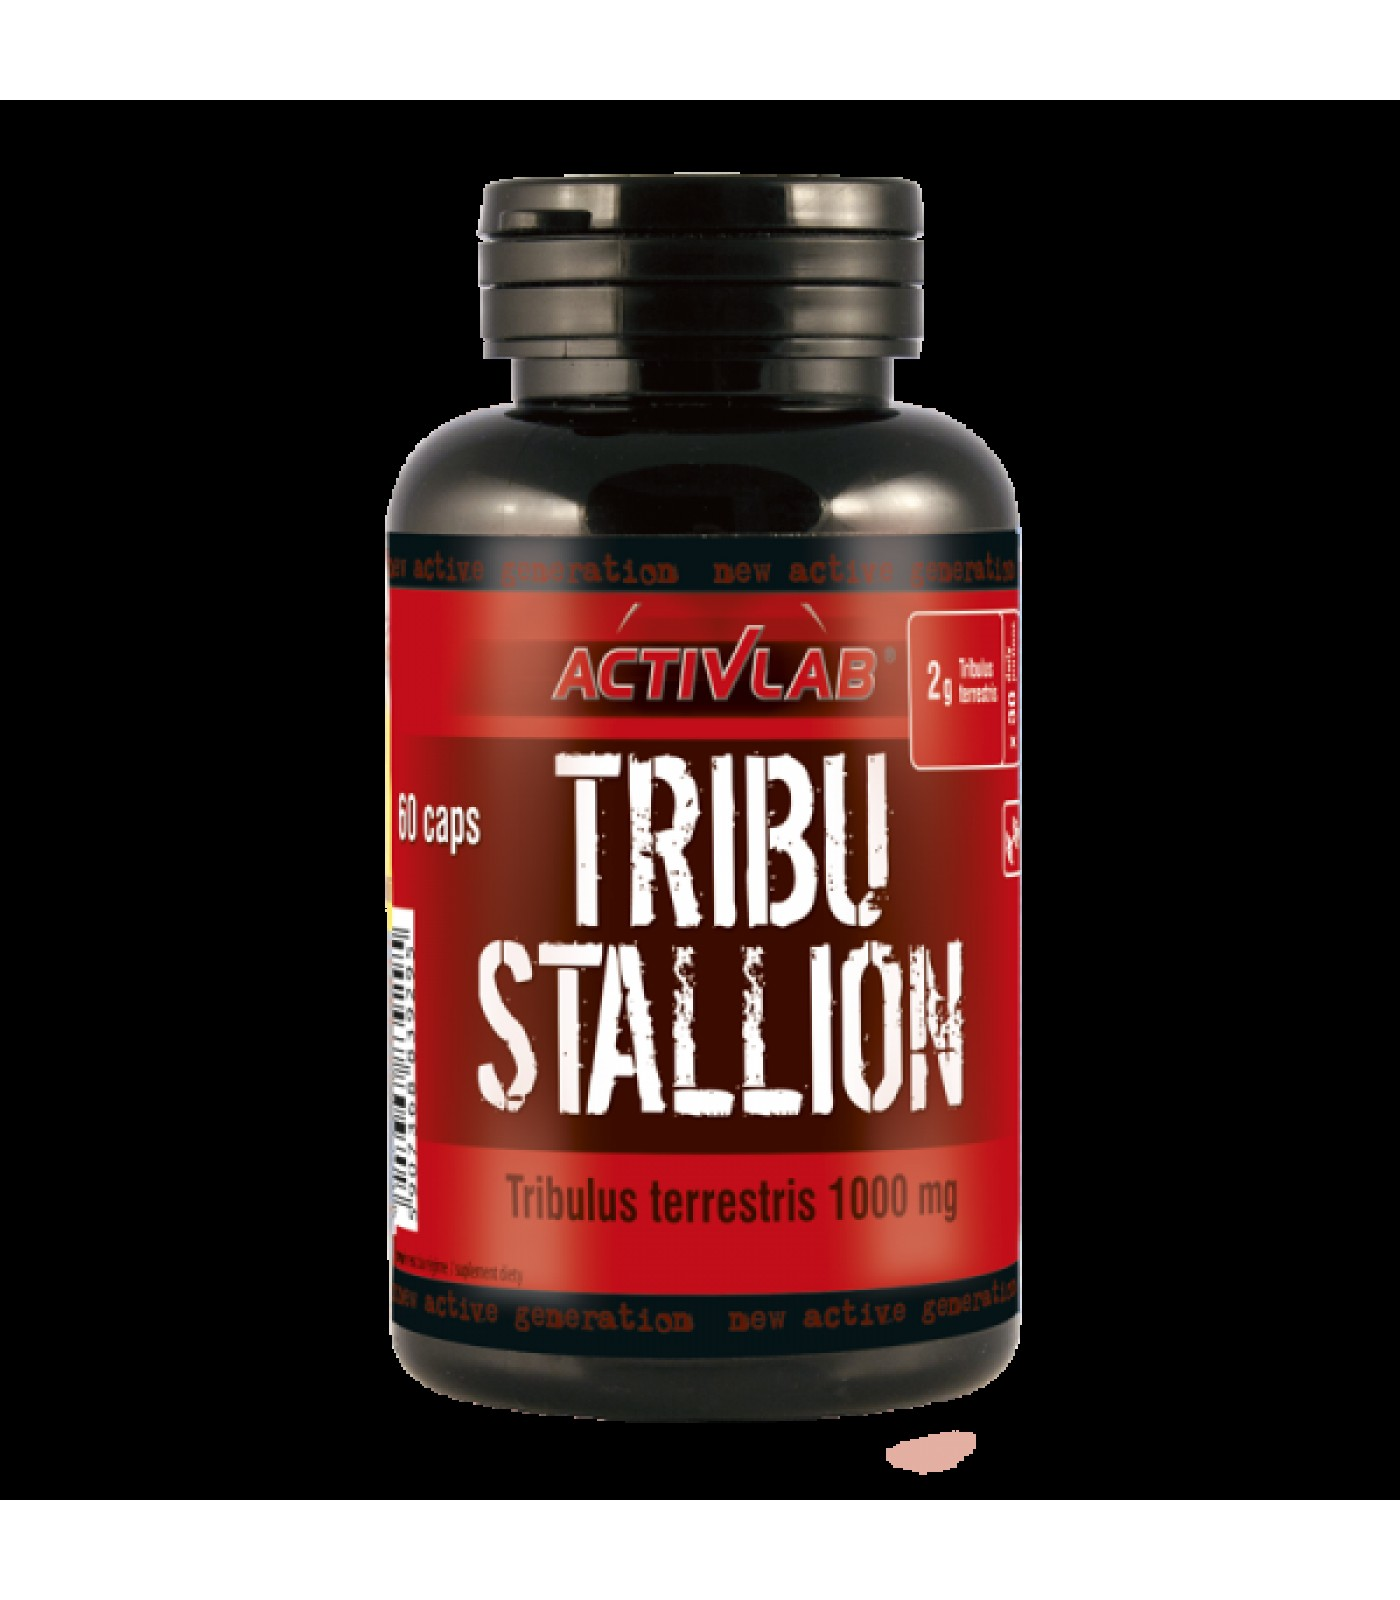 ActivLab - Tribu Stallion / 60caps.